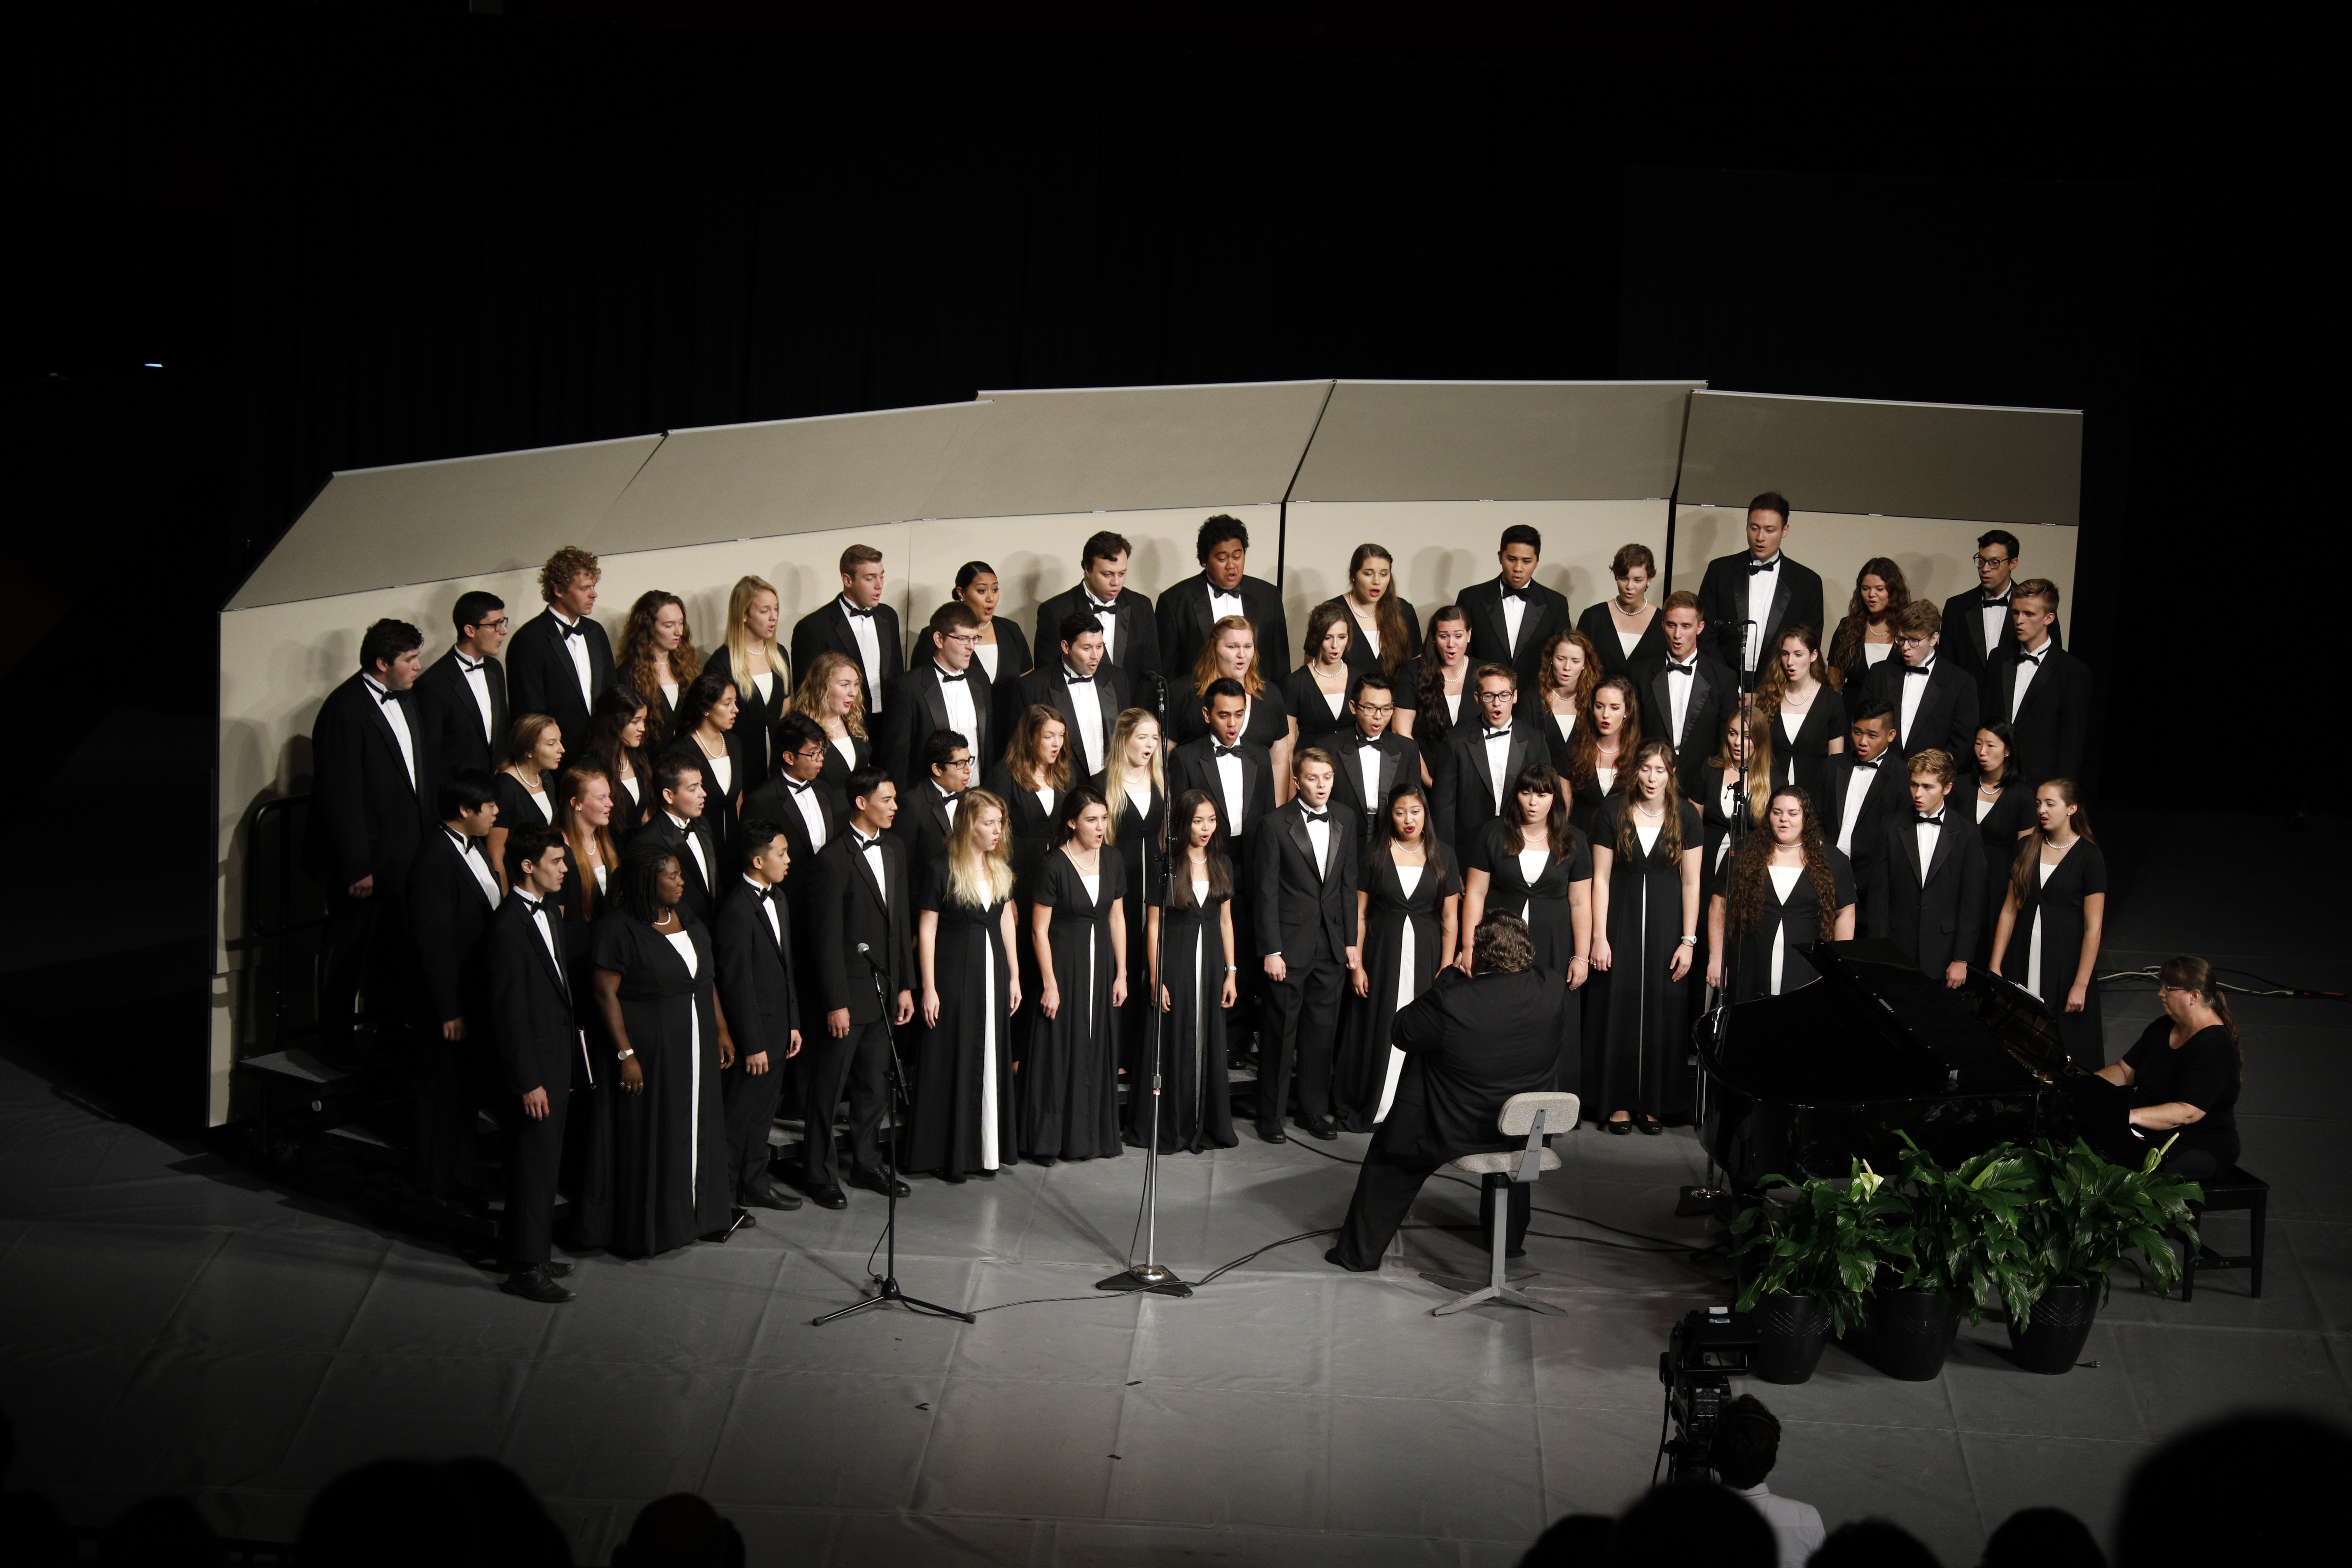 A choir performs prior to Elder Quentin L. Cook, of the Quorum of the Twelve Apostles, speaking during a campus devotional at BYU-Hawaii on Nov. 20.